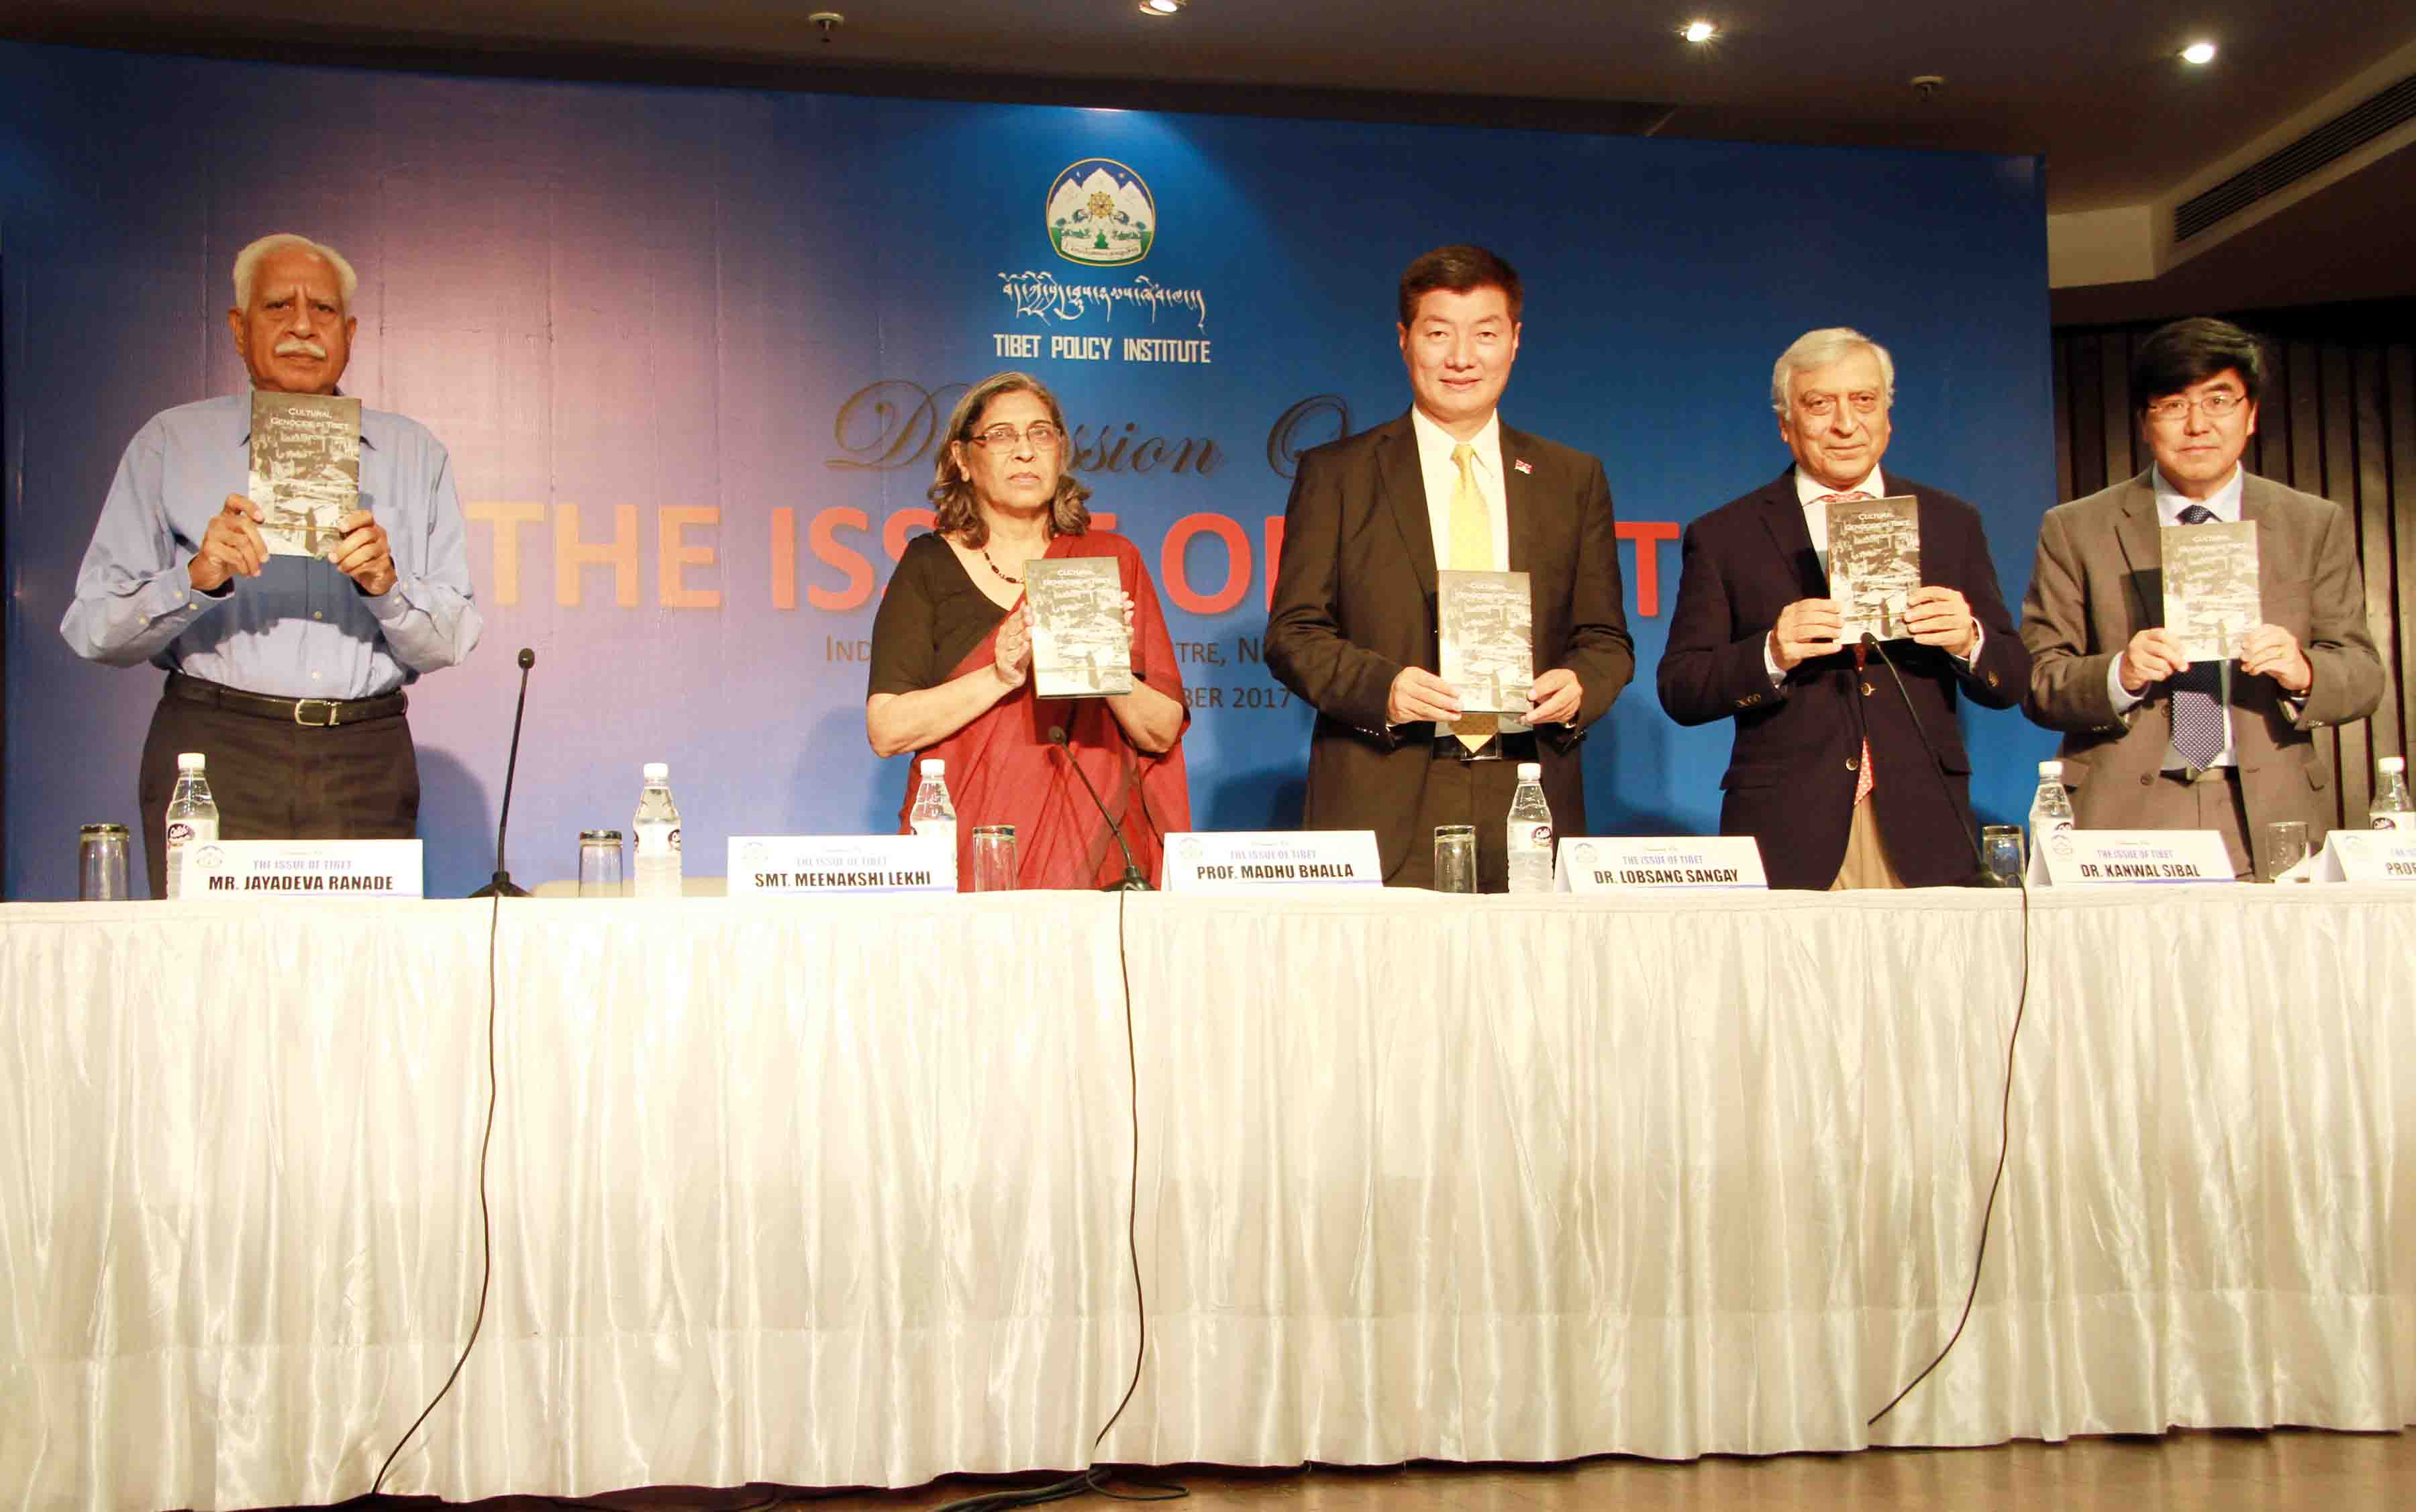 President Dr Lobsang Sangay along with the co-panelists releasing TPI's report on 'Cultural Genocide in Tibet'. (Photo courtesy: tibet.net)